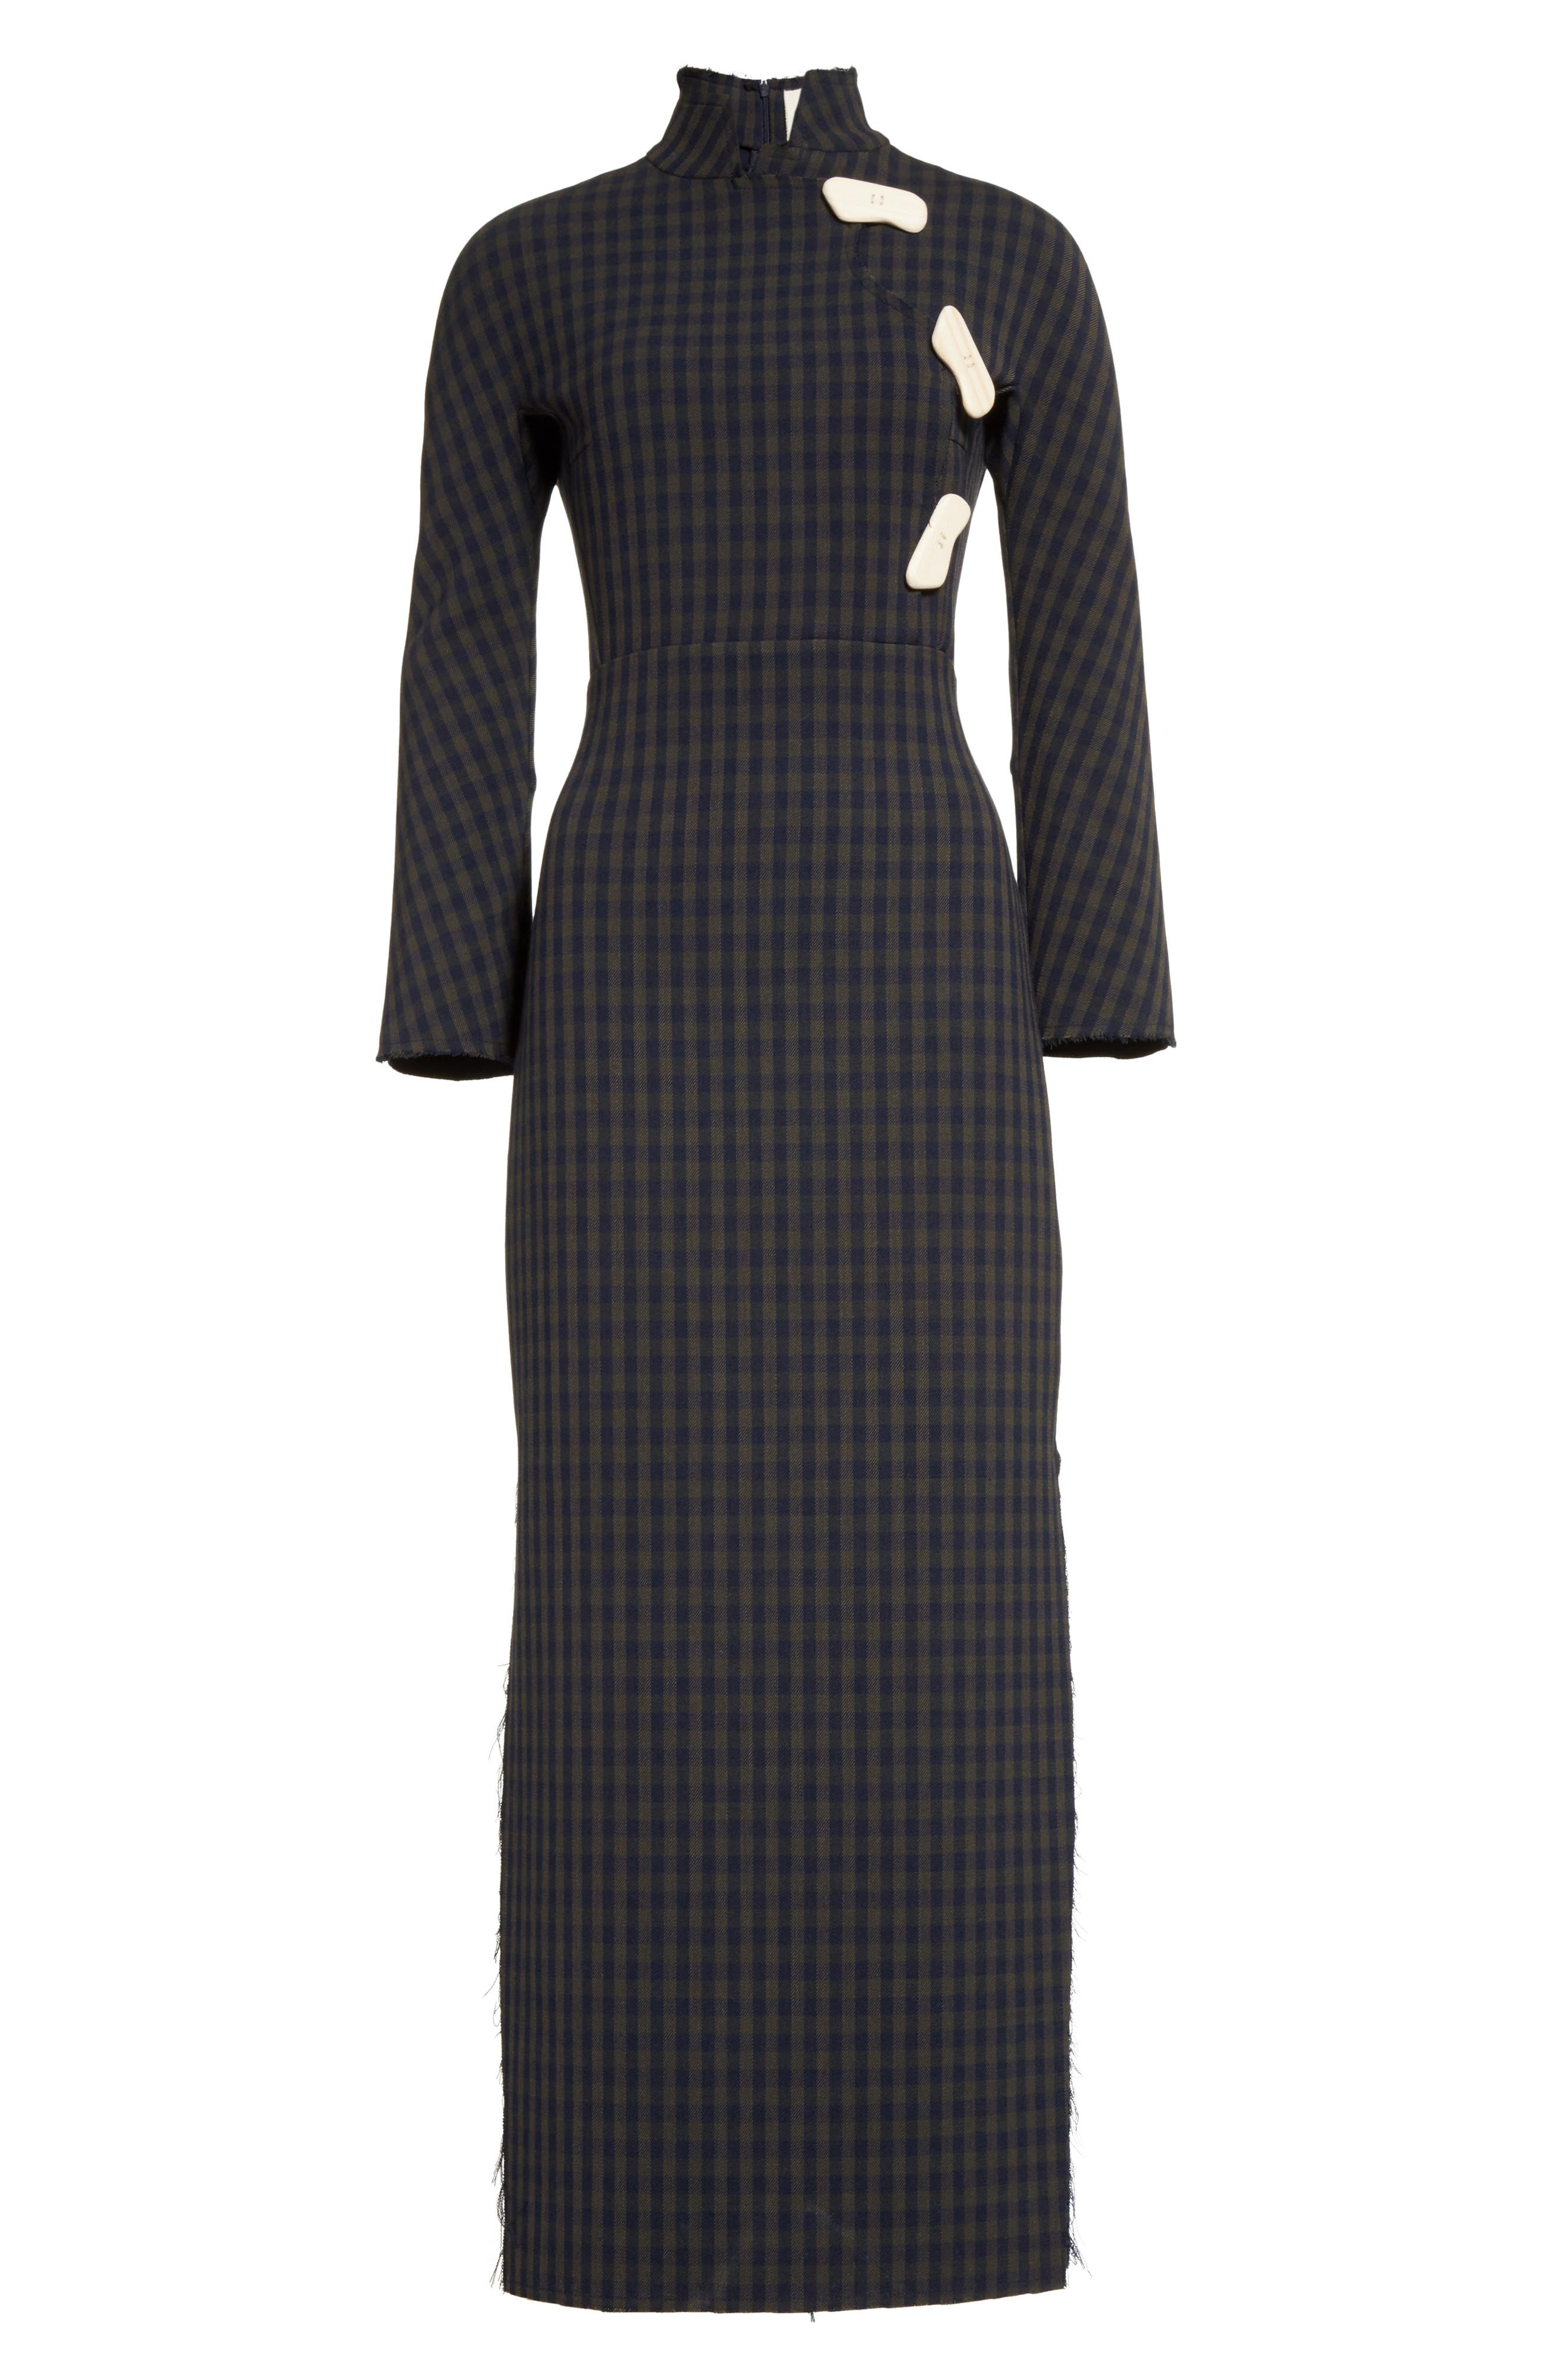 A.W.A.K.E.,                             Fitted Gingham Dress with Carved Wooden Buttons,                             Alternate thumbnail 6, color,                             300